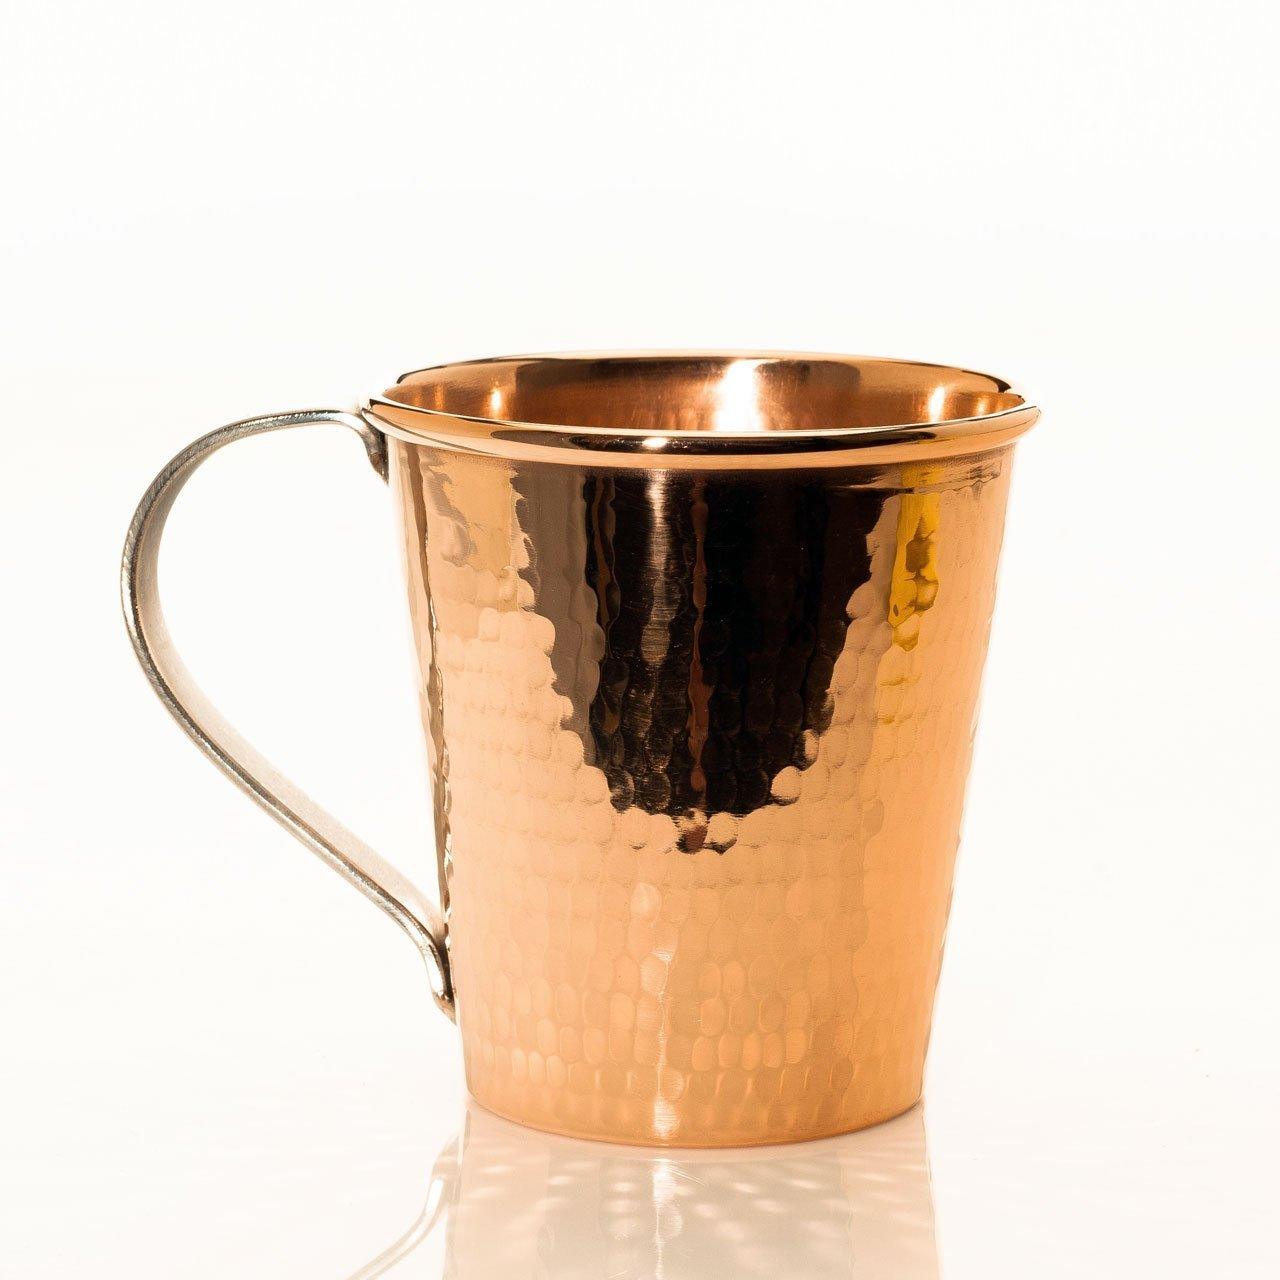 18OZ MOSCOW MULE MUG HAMMERED COPPER STAINLESS STEEL HANDLE